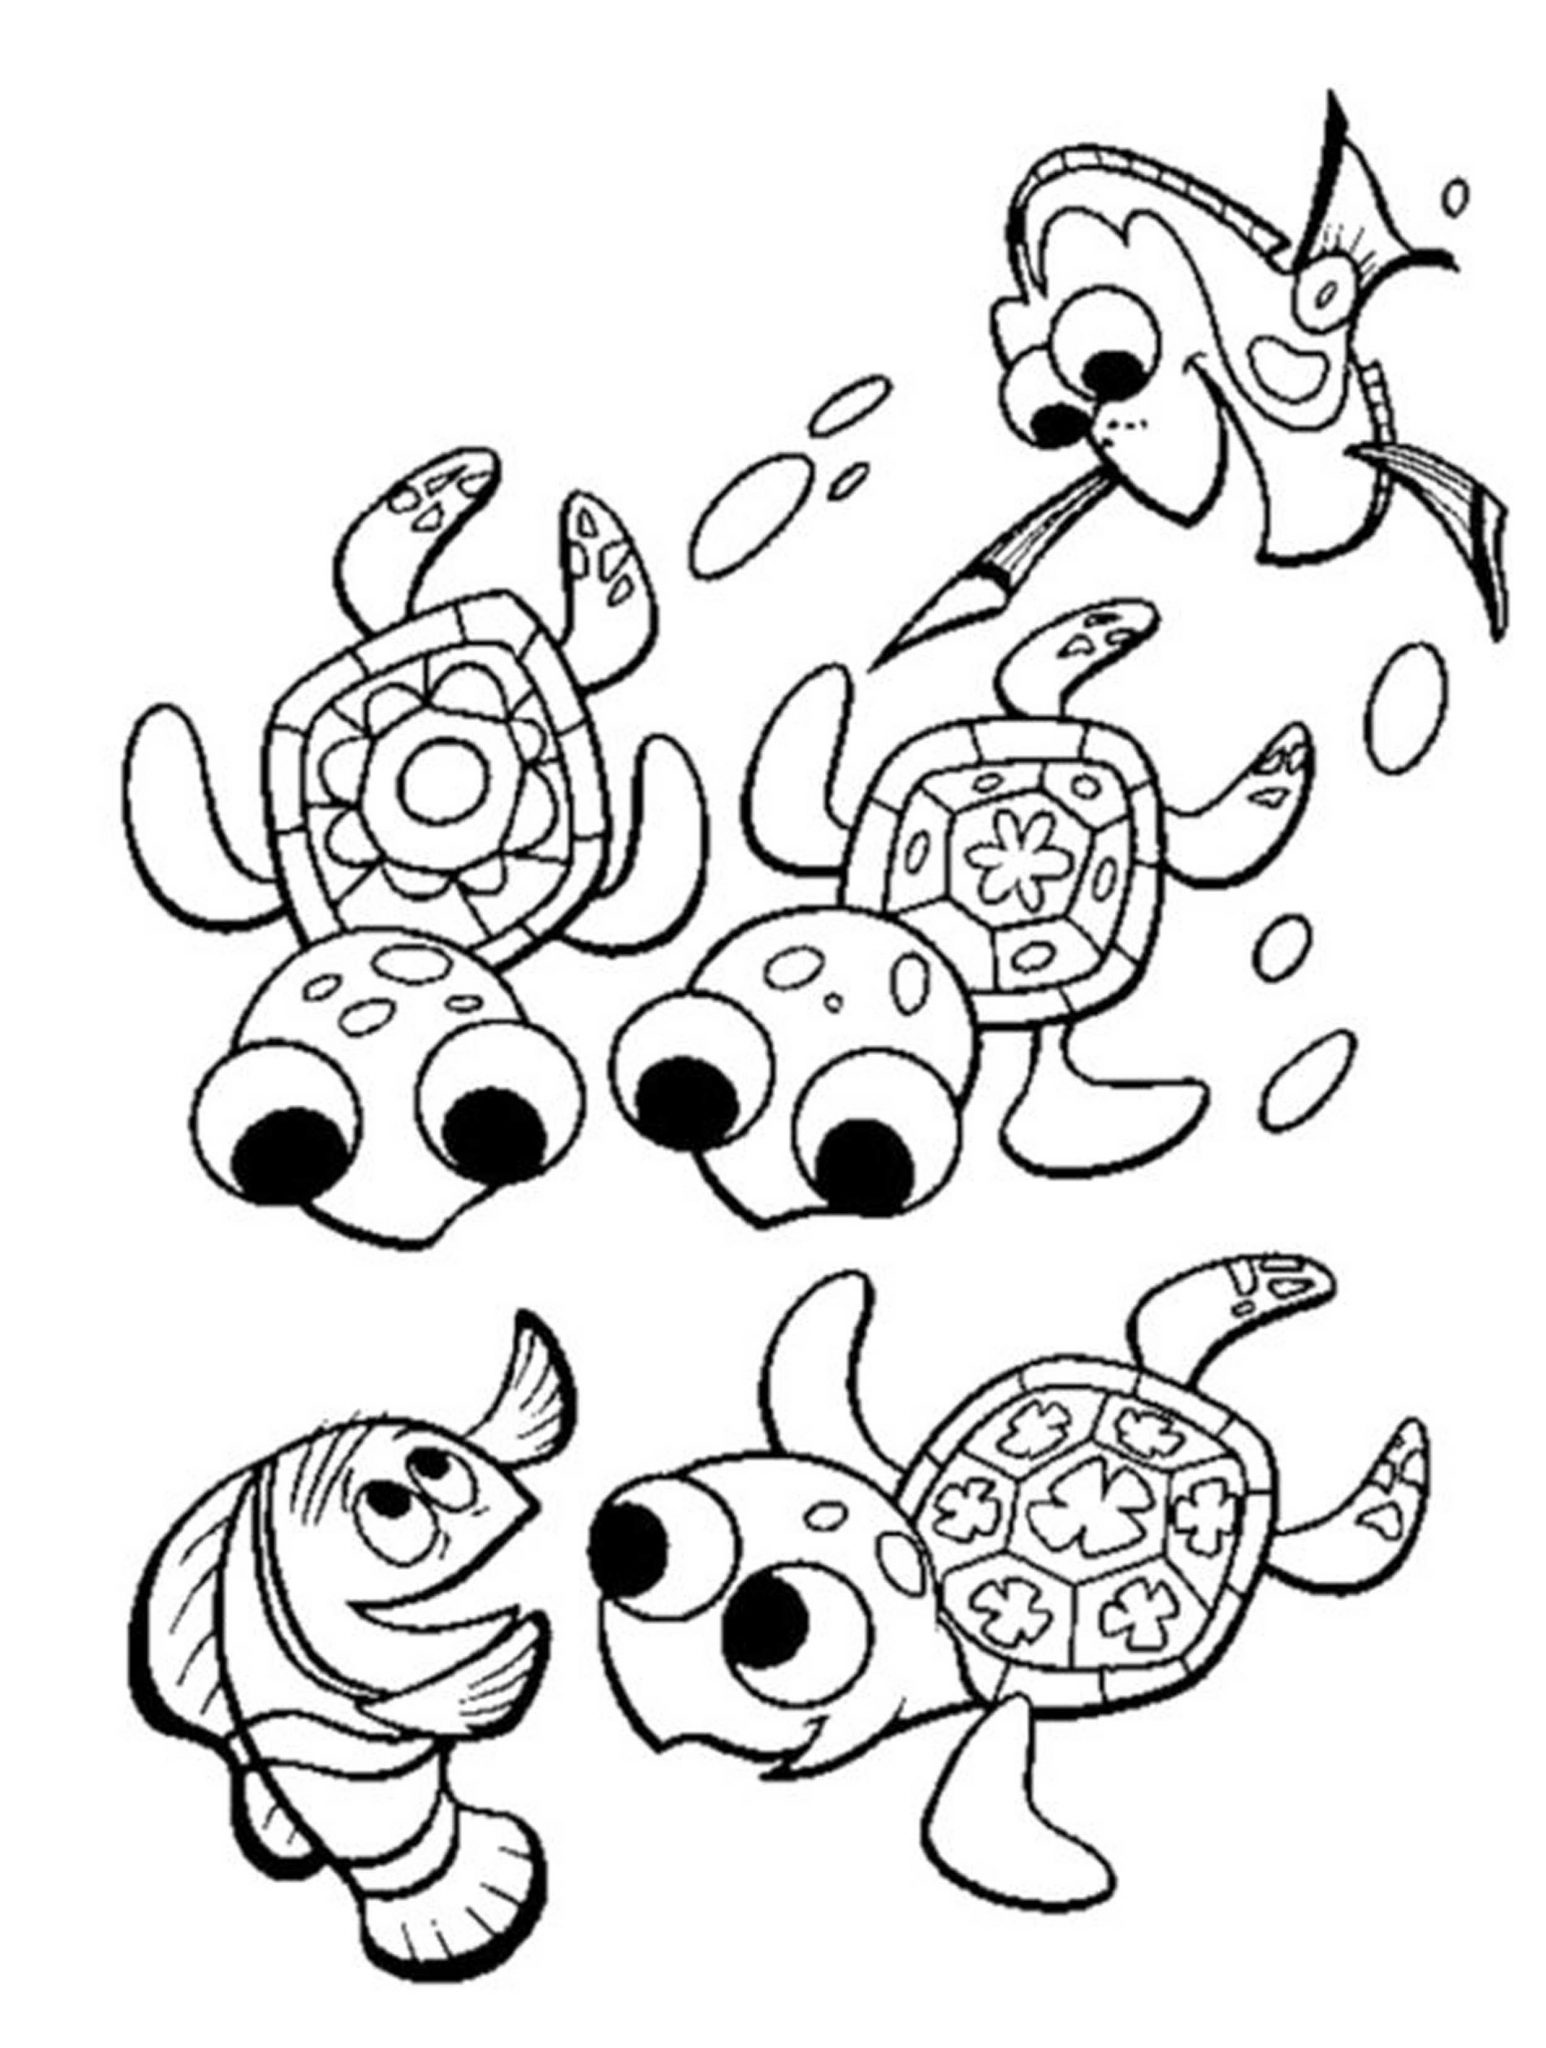 tortoise coloring page coloring pages turtles free printable coloring pages page coloring tortoise 1 1